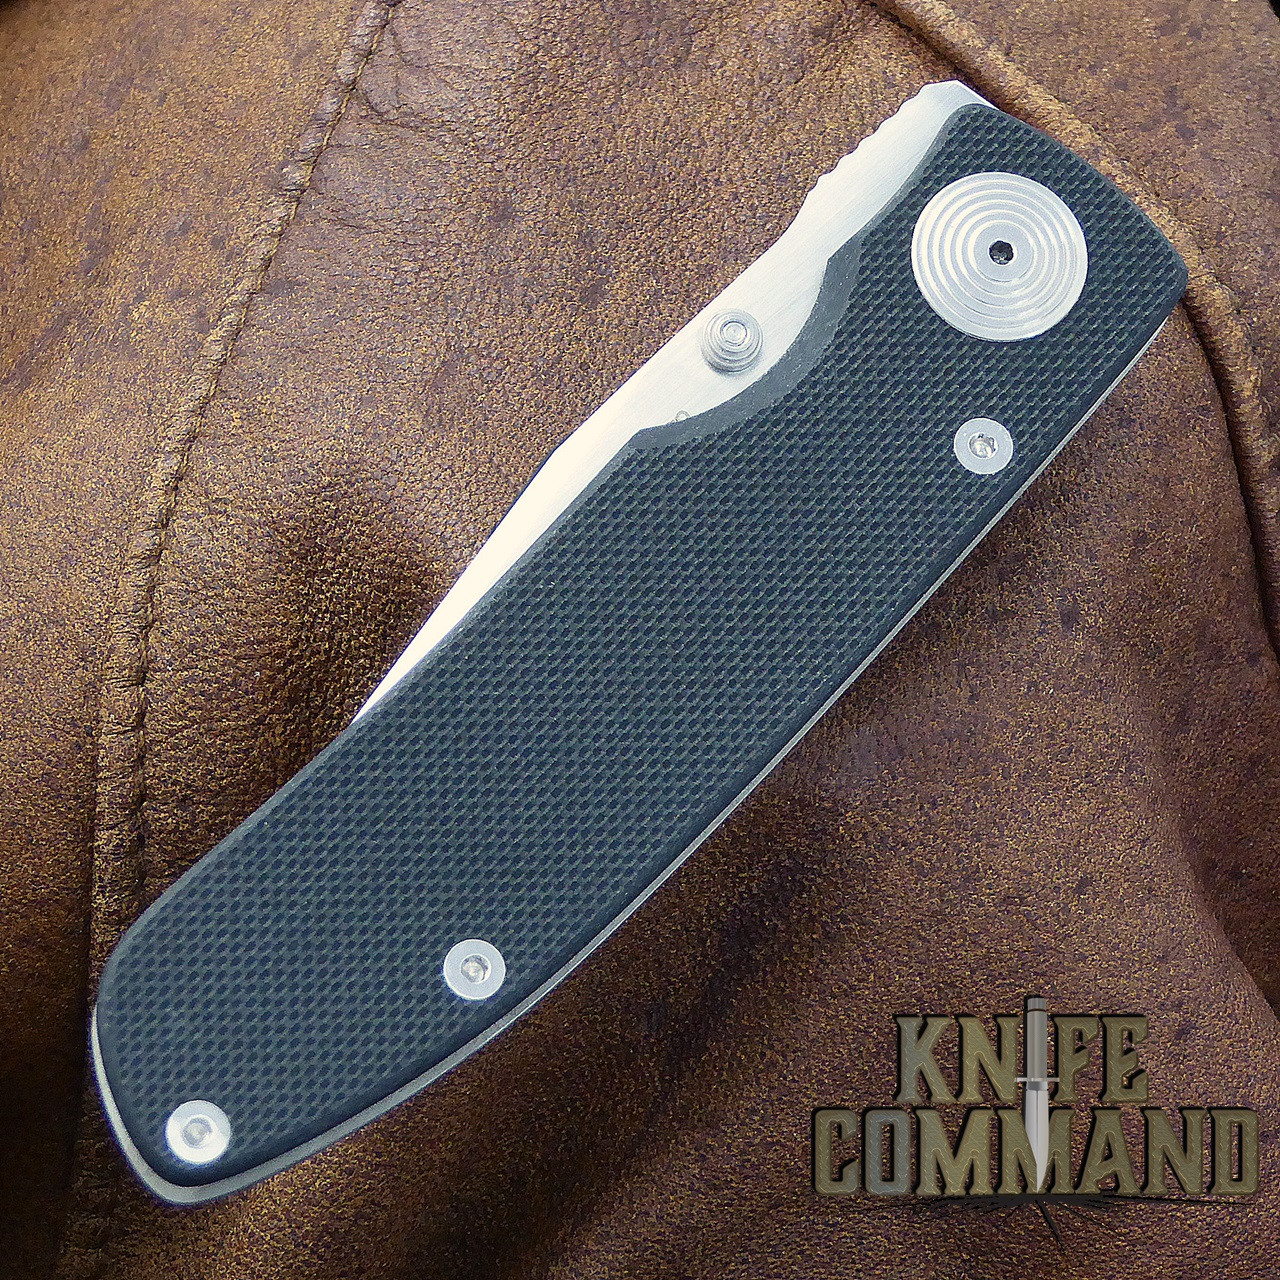 Perfect for every day carry.